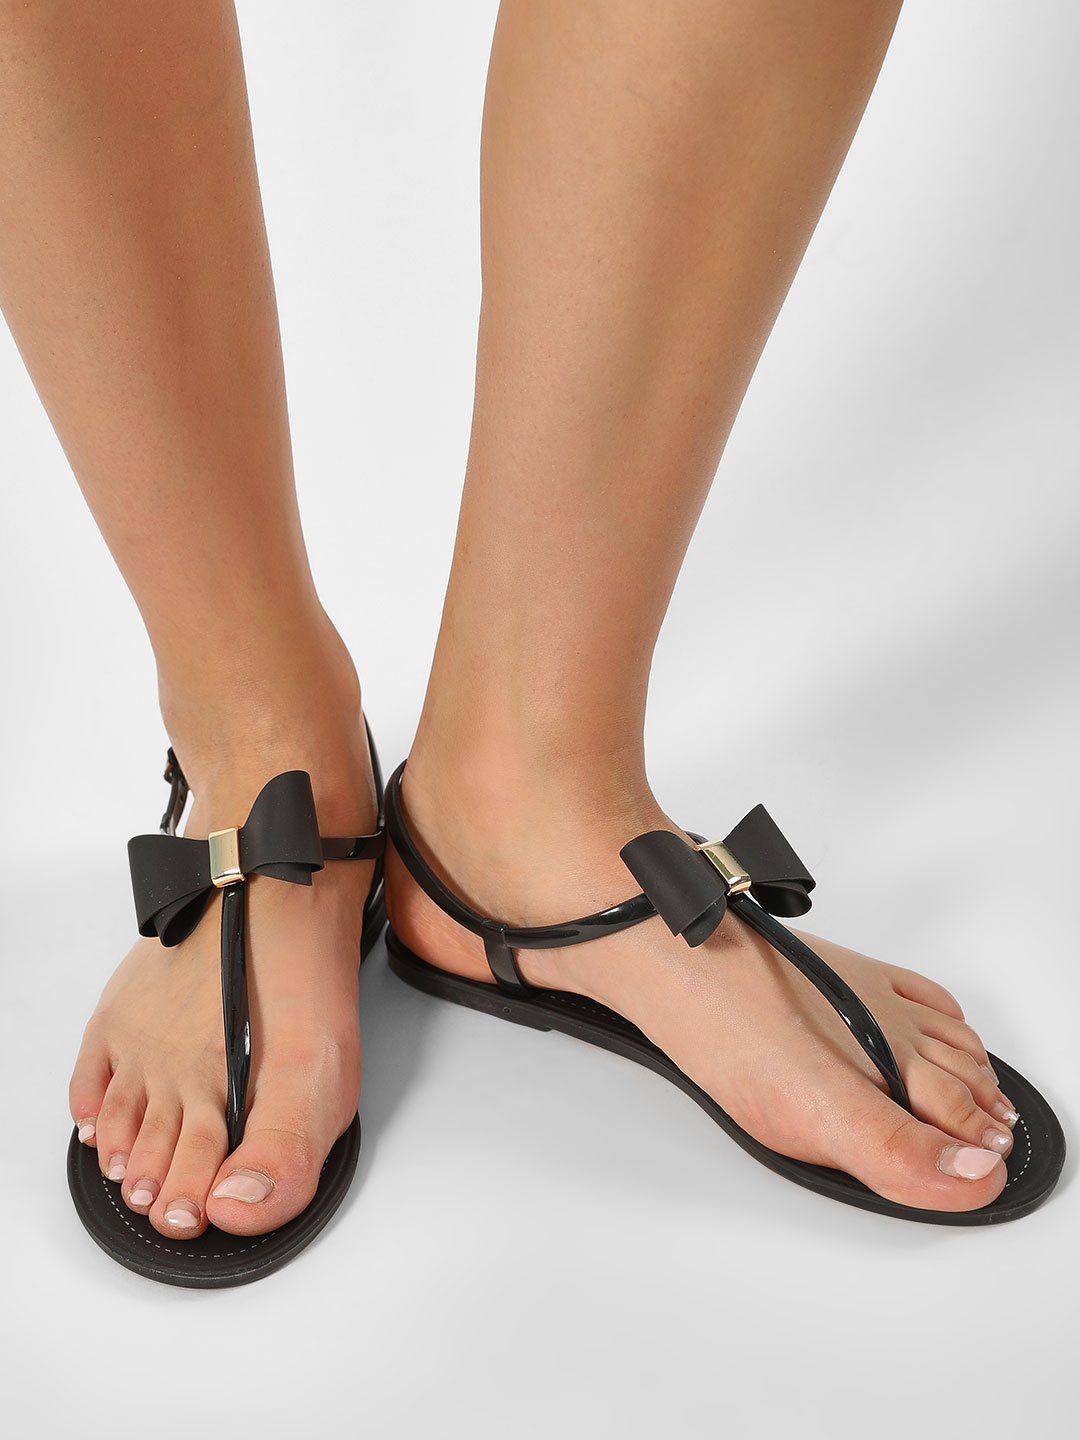 My Foot Couture Black Bow Detail T-Strap Flats 1